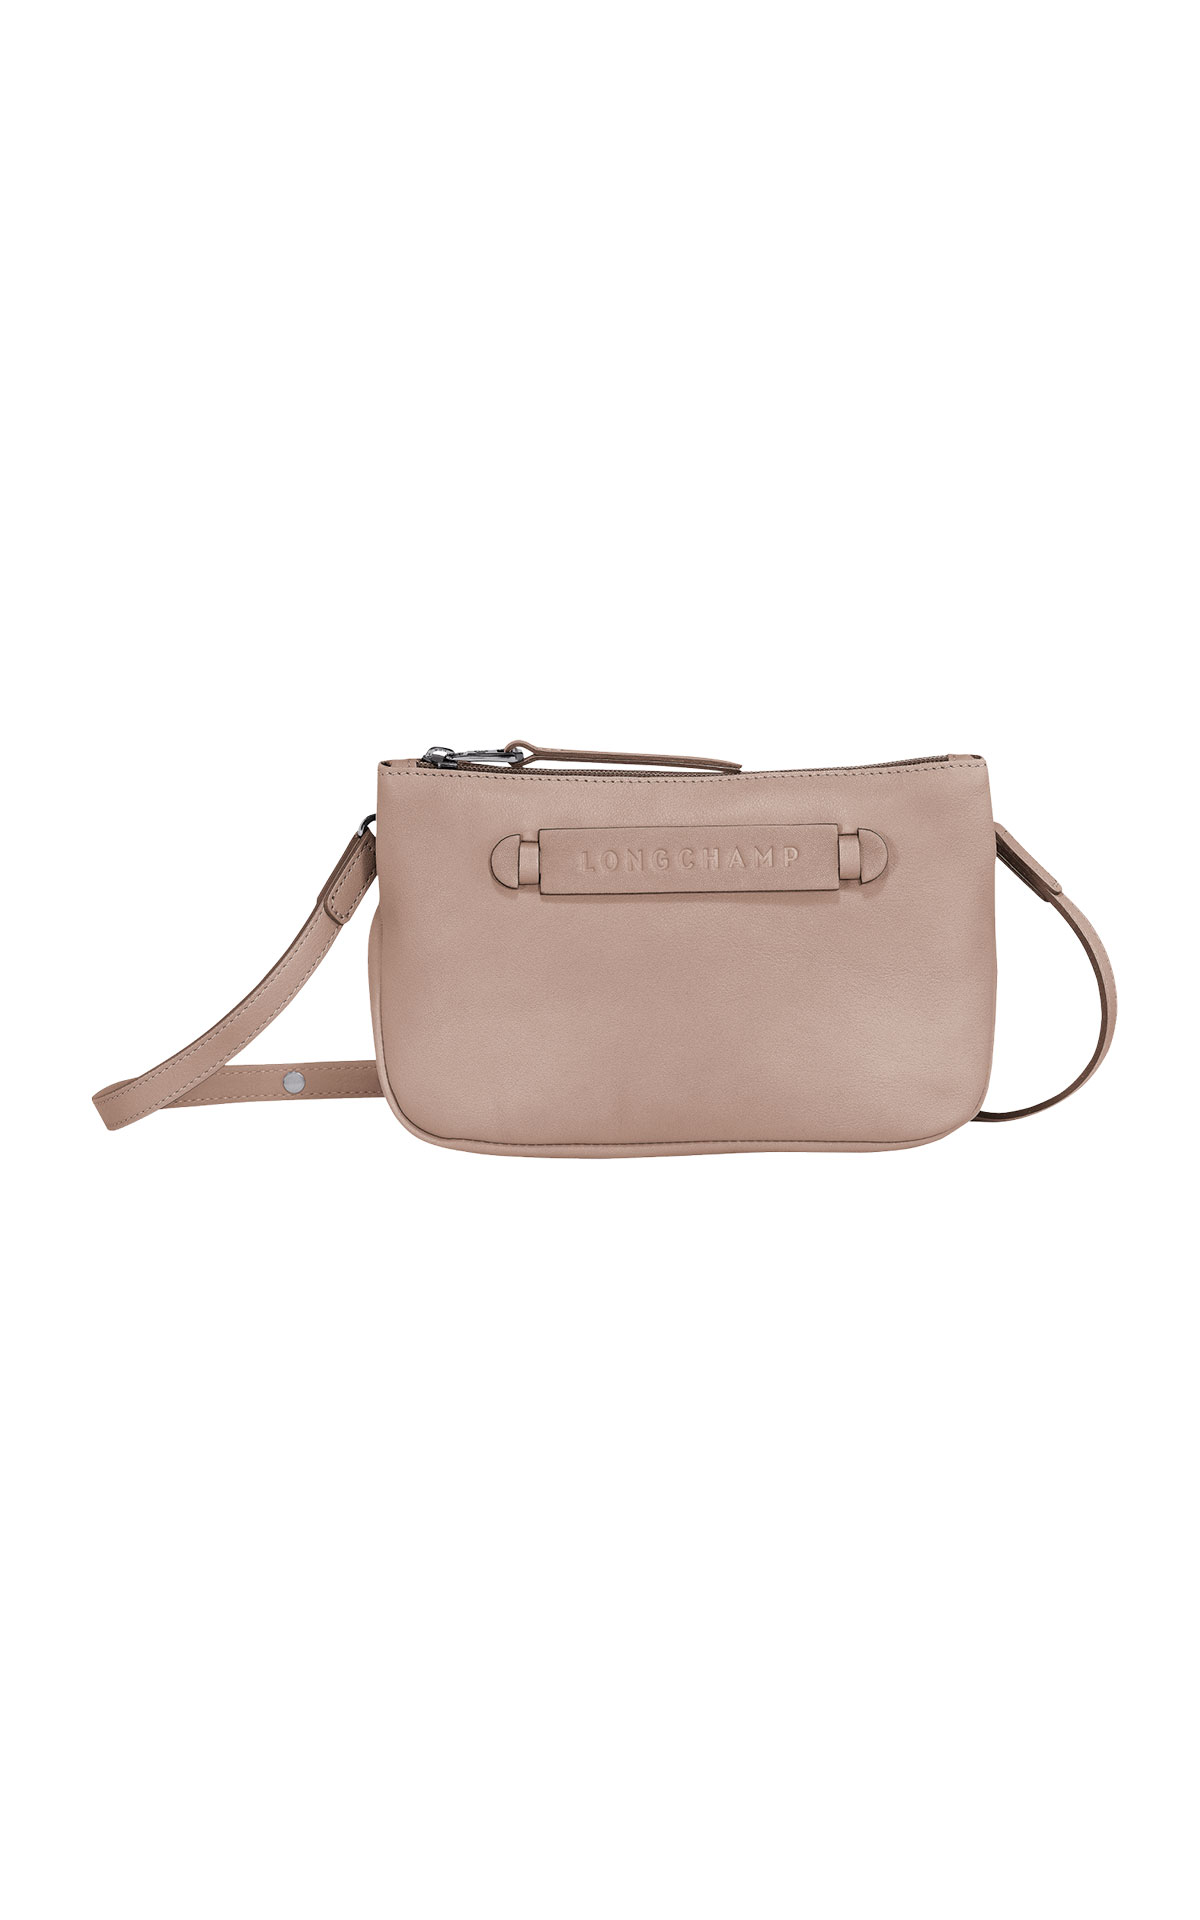 Beige crossbody bag Longchamp